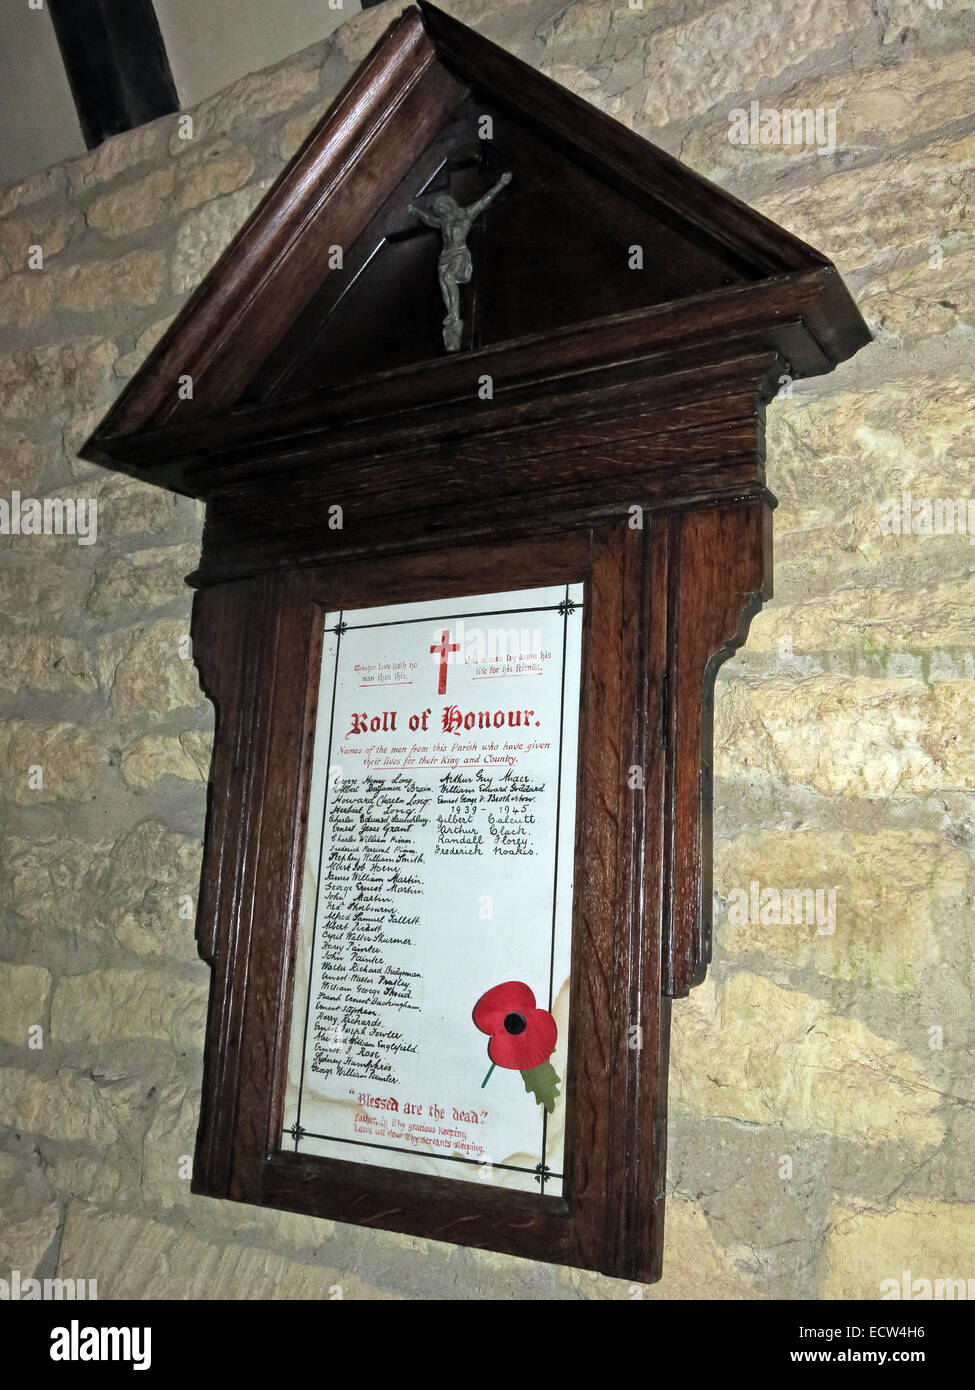 Wood,Green,United,Kingdom,with,a,poppy,November,wwI,WWII,world,war,list,of,names,of,the,fallen,wooden,memorial,and,crucifix,cross,crucified,christ,rememberance,West Oxfordshire,England,UK english curches historic,GotonySmith,list,of,soldiers,volunteers,neo-Gothic,neoGothic